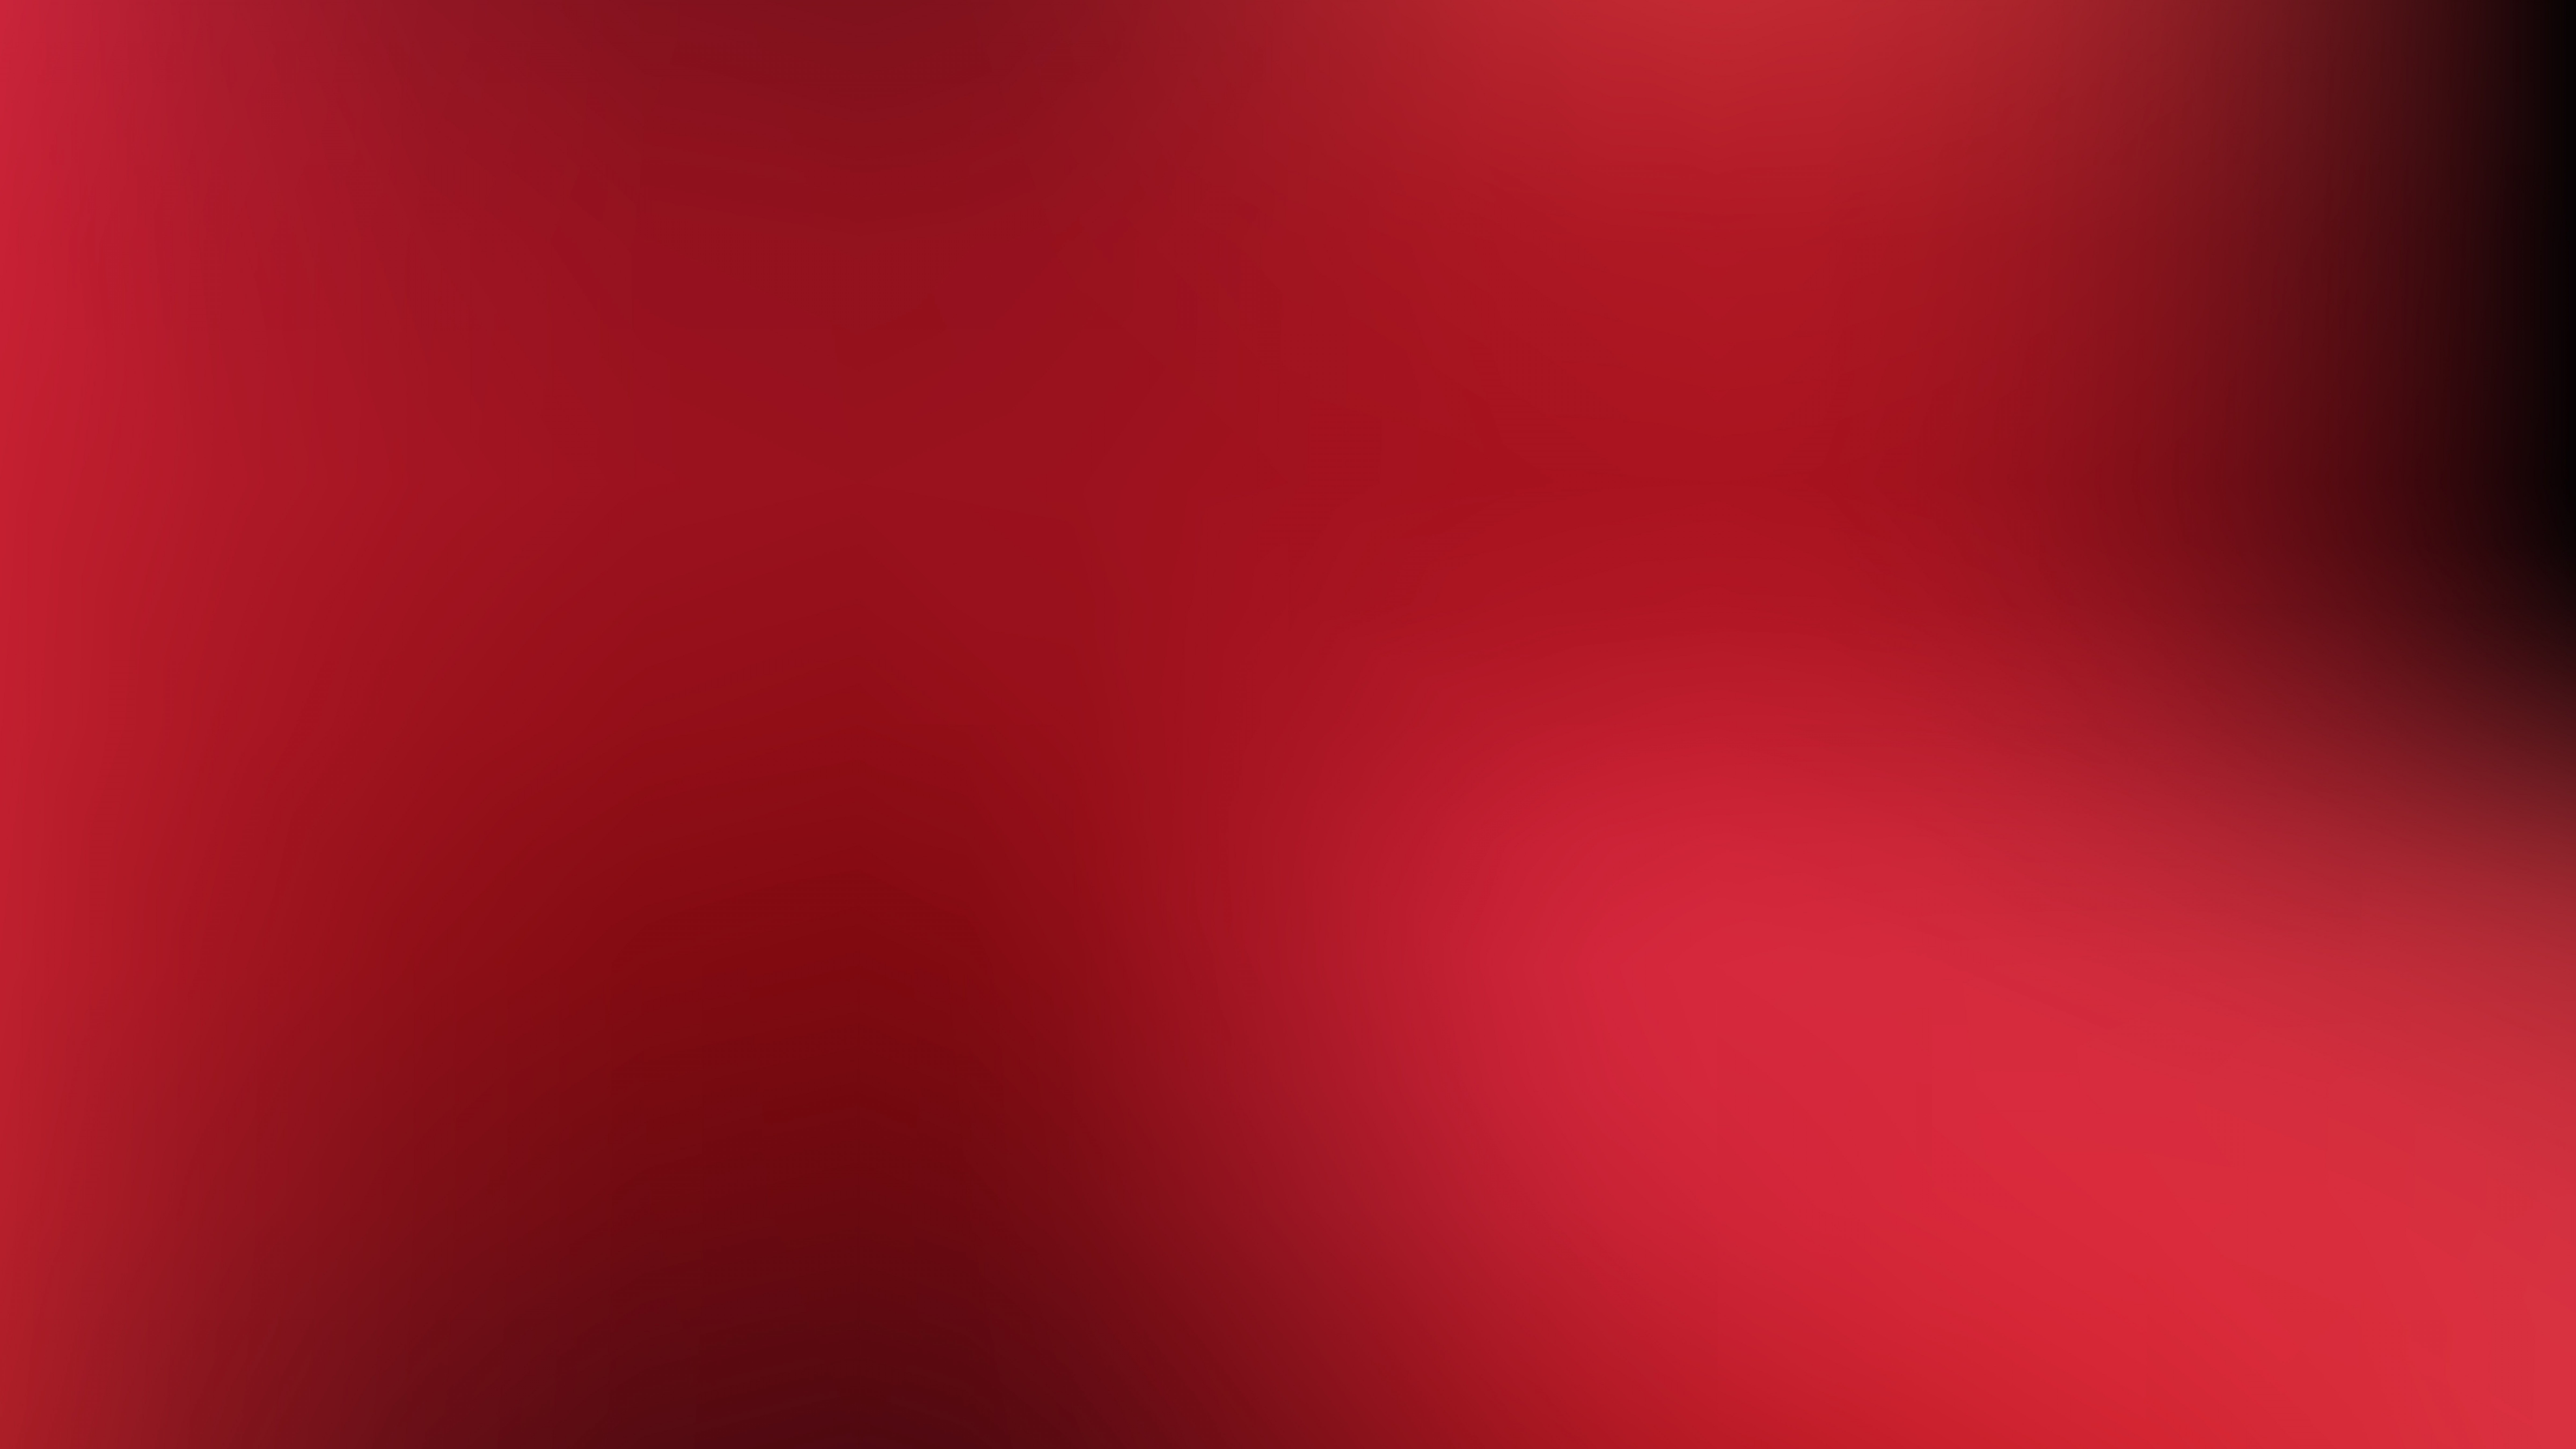 Red Professional Background Vectors: Red And Black Professional Powerpoint Background Vector